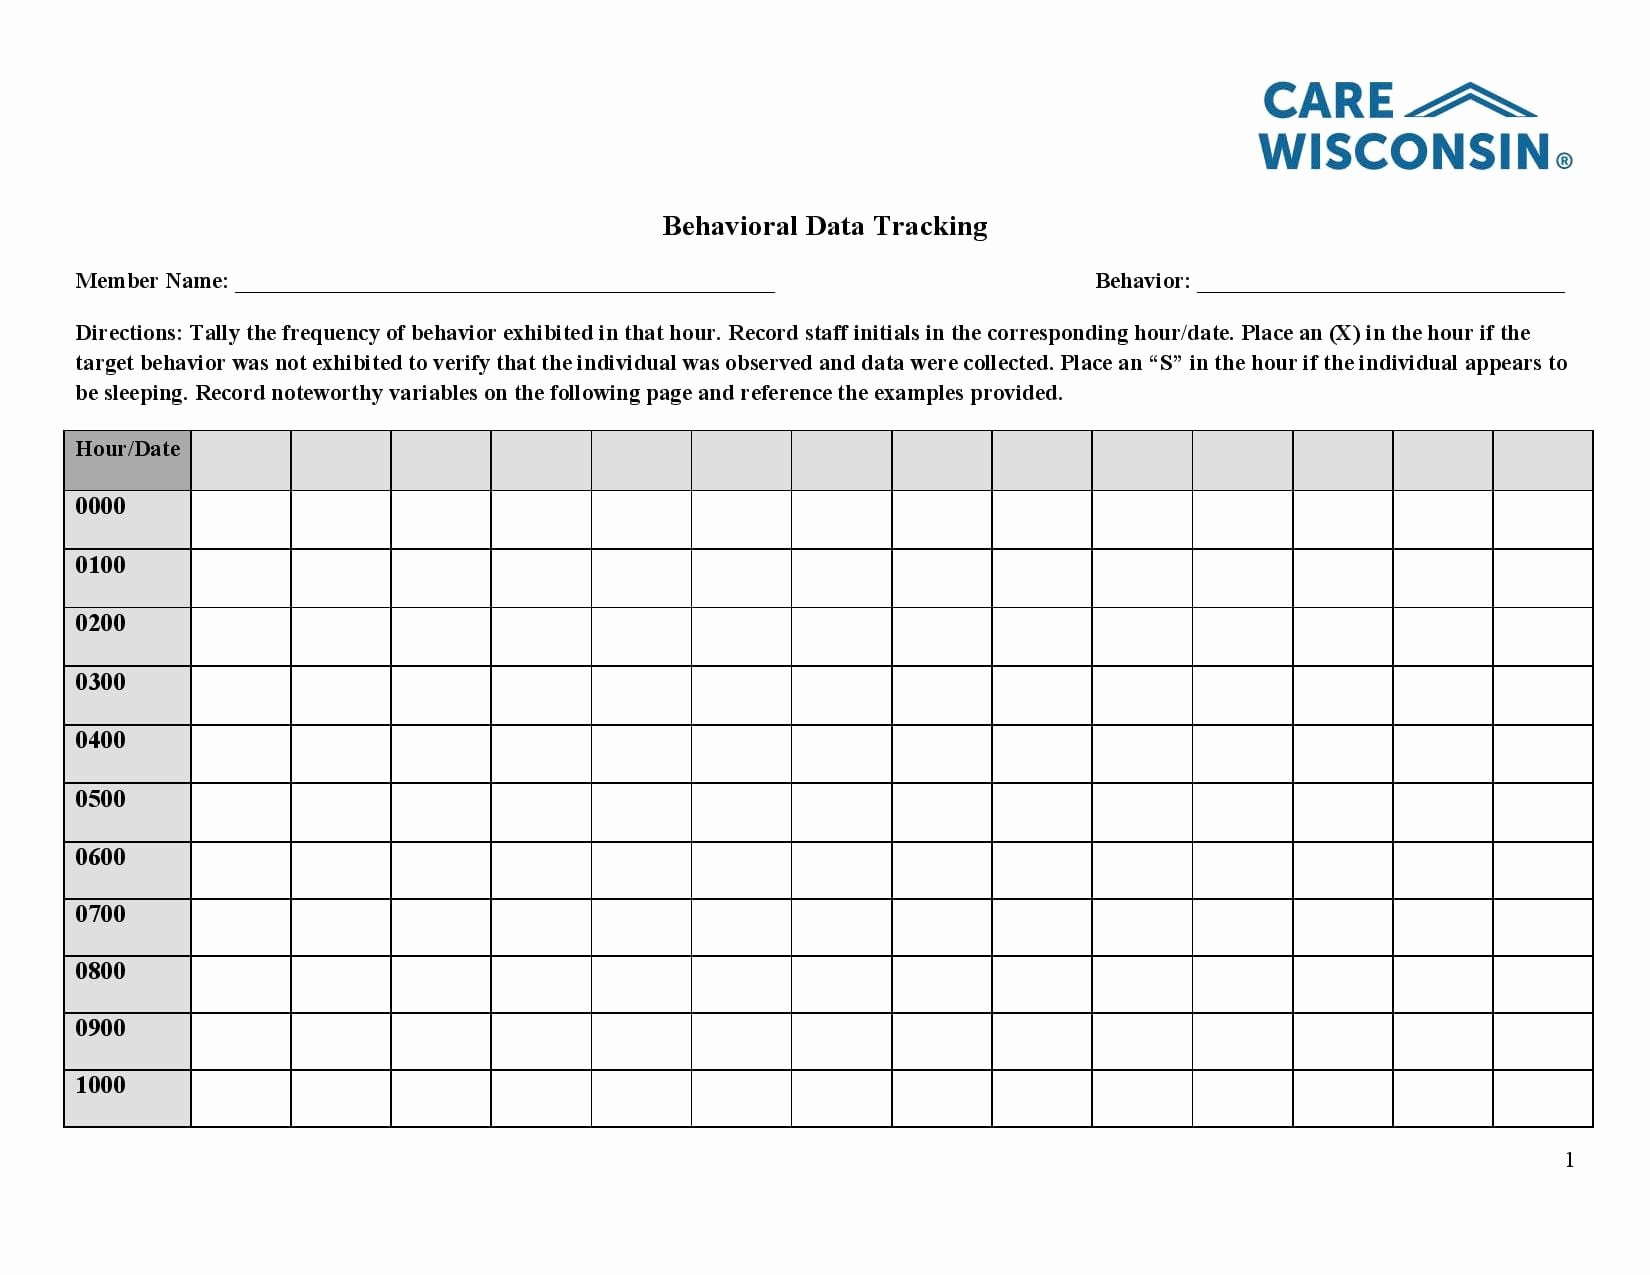 Behavior Tracker Template Fresh Behavioral Data Tracking Template Page 001 Care Wisconsin